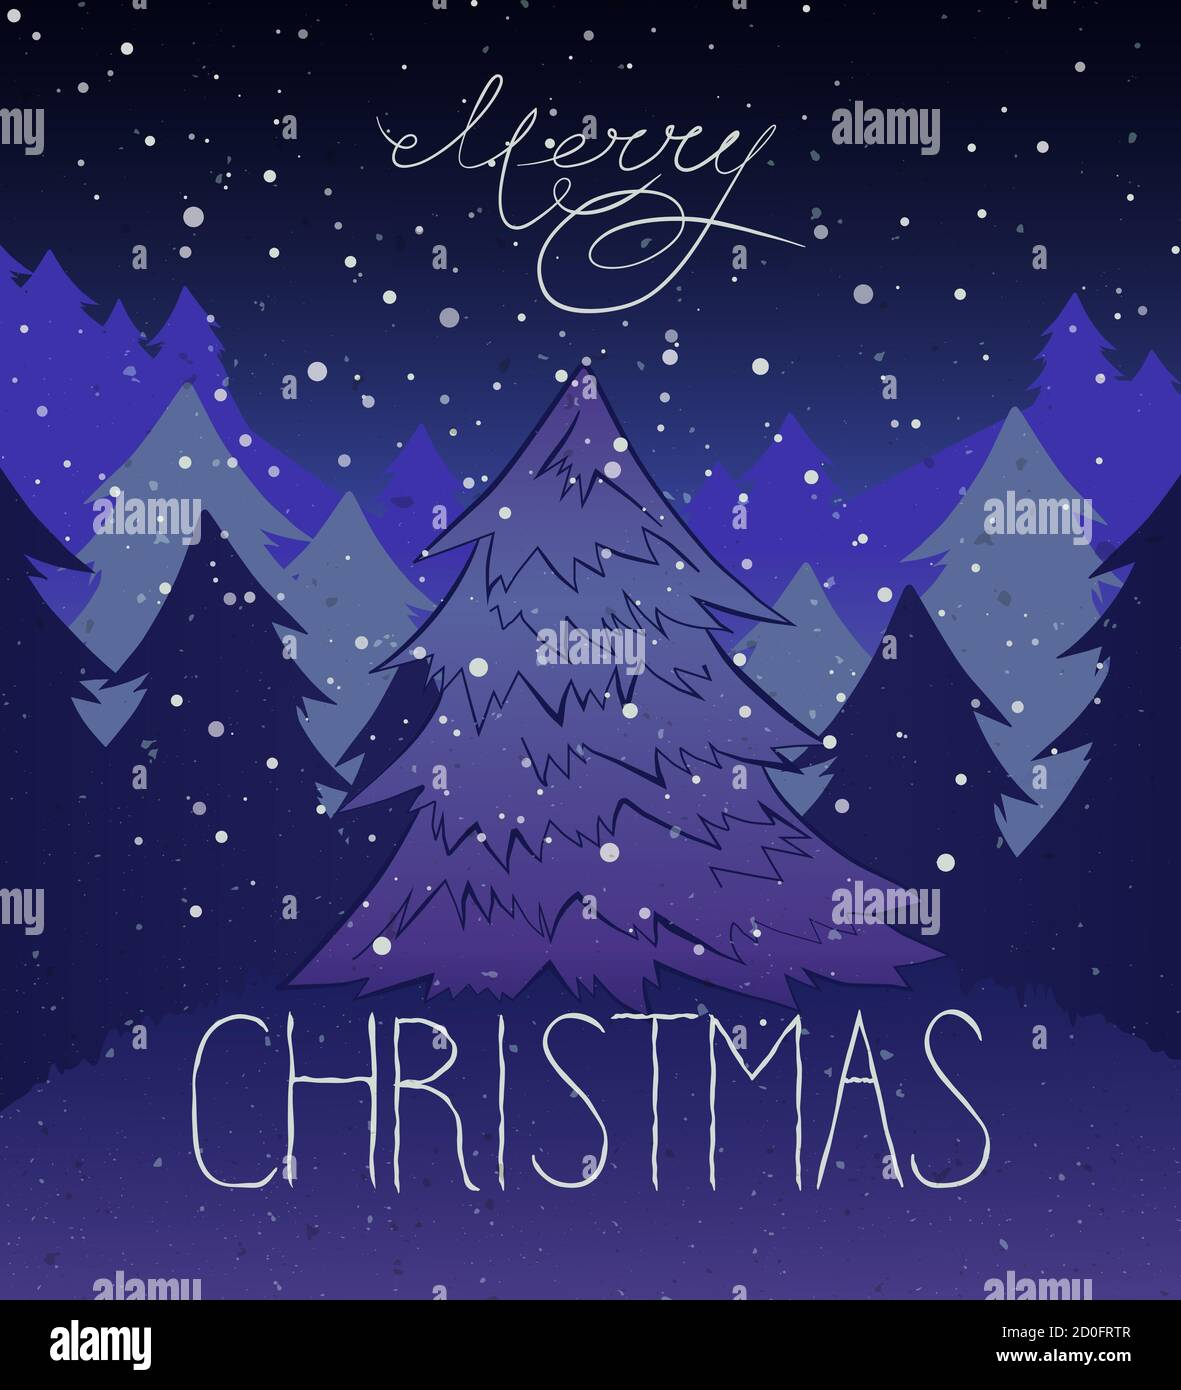 Vector Vintage Background With Christmas Tree And Merry Christmas Hand Lettering In White And Blue Colors Stock Vector Image Art Alamy